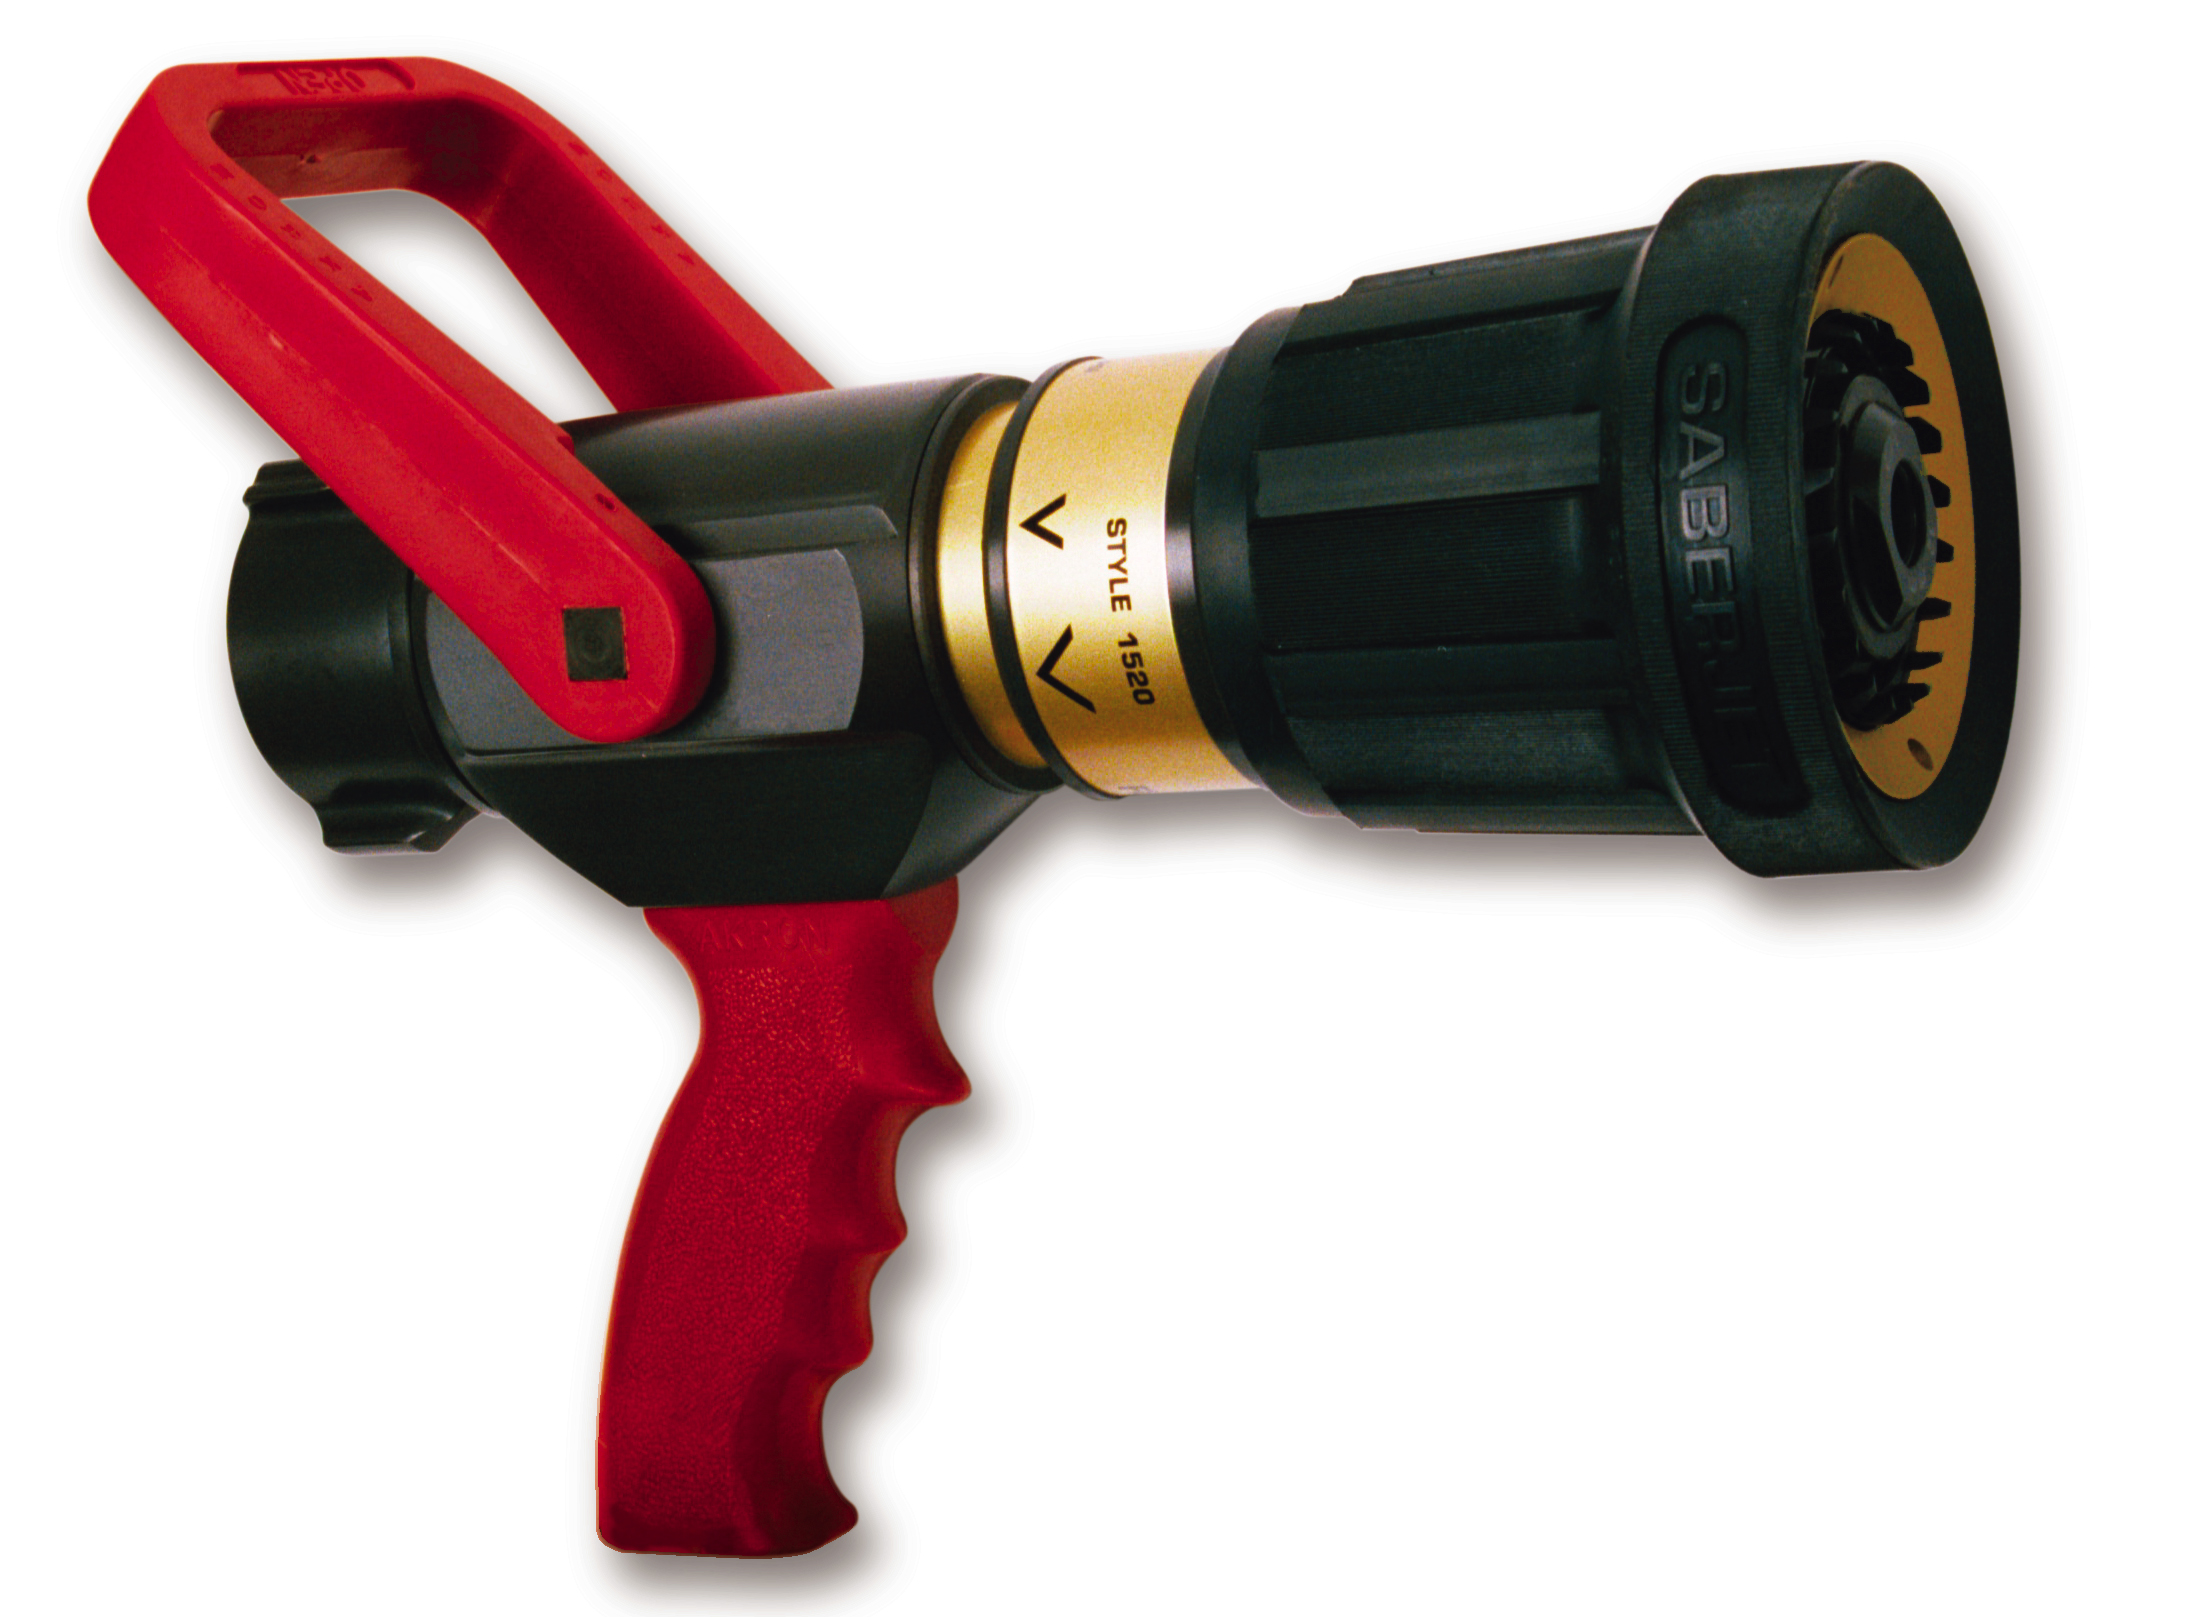 1 12 Dual ShutOff SaberJet with Pistol Grip